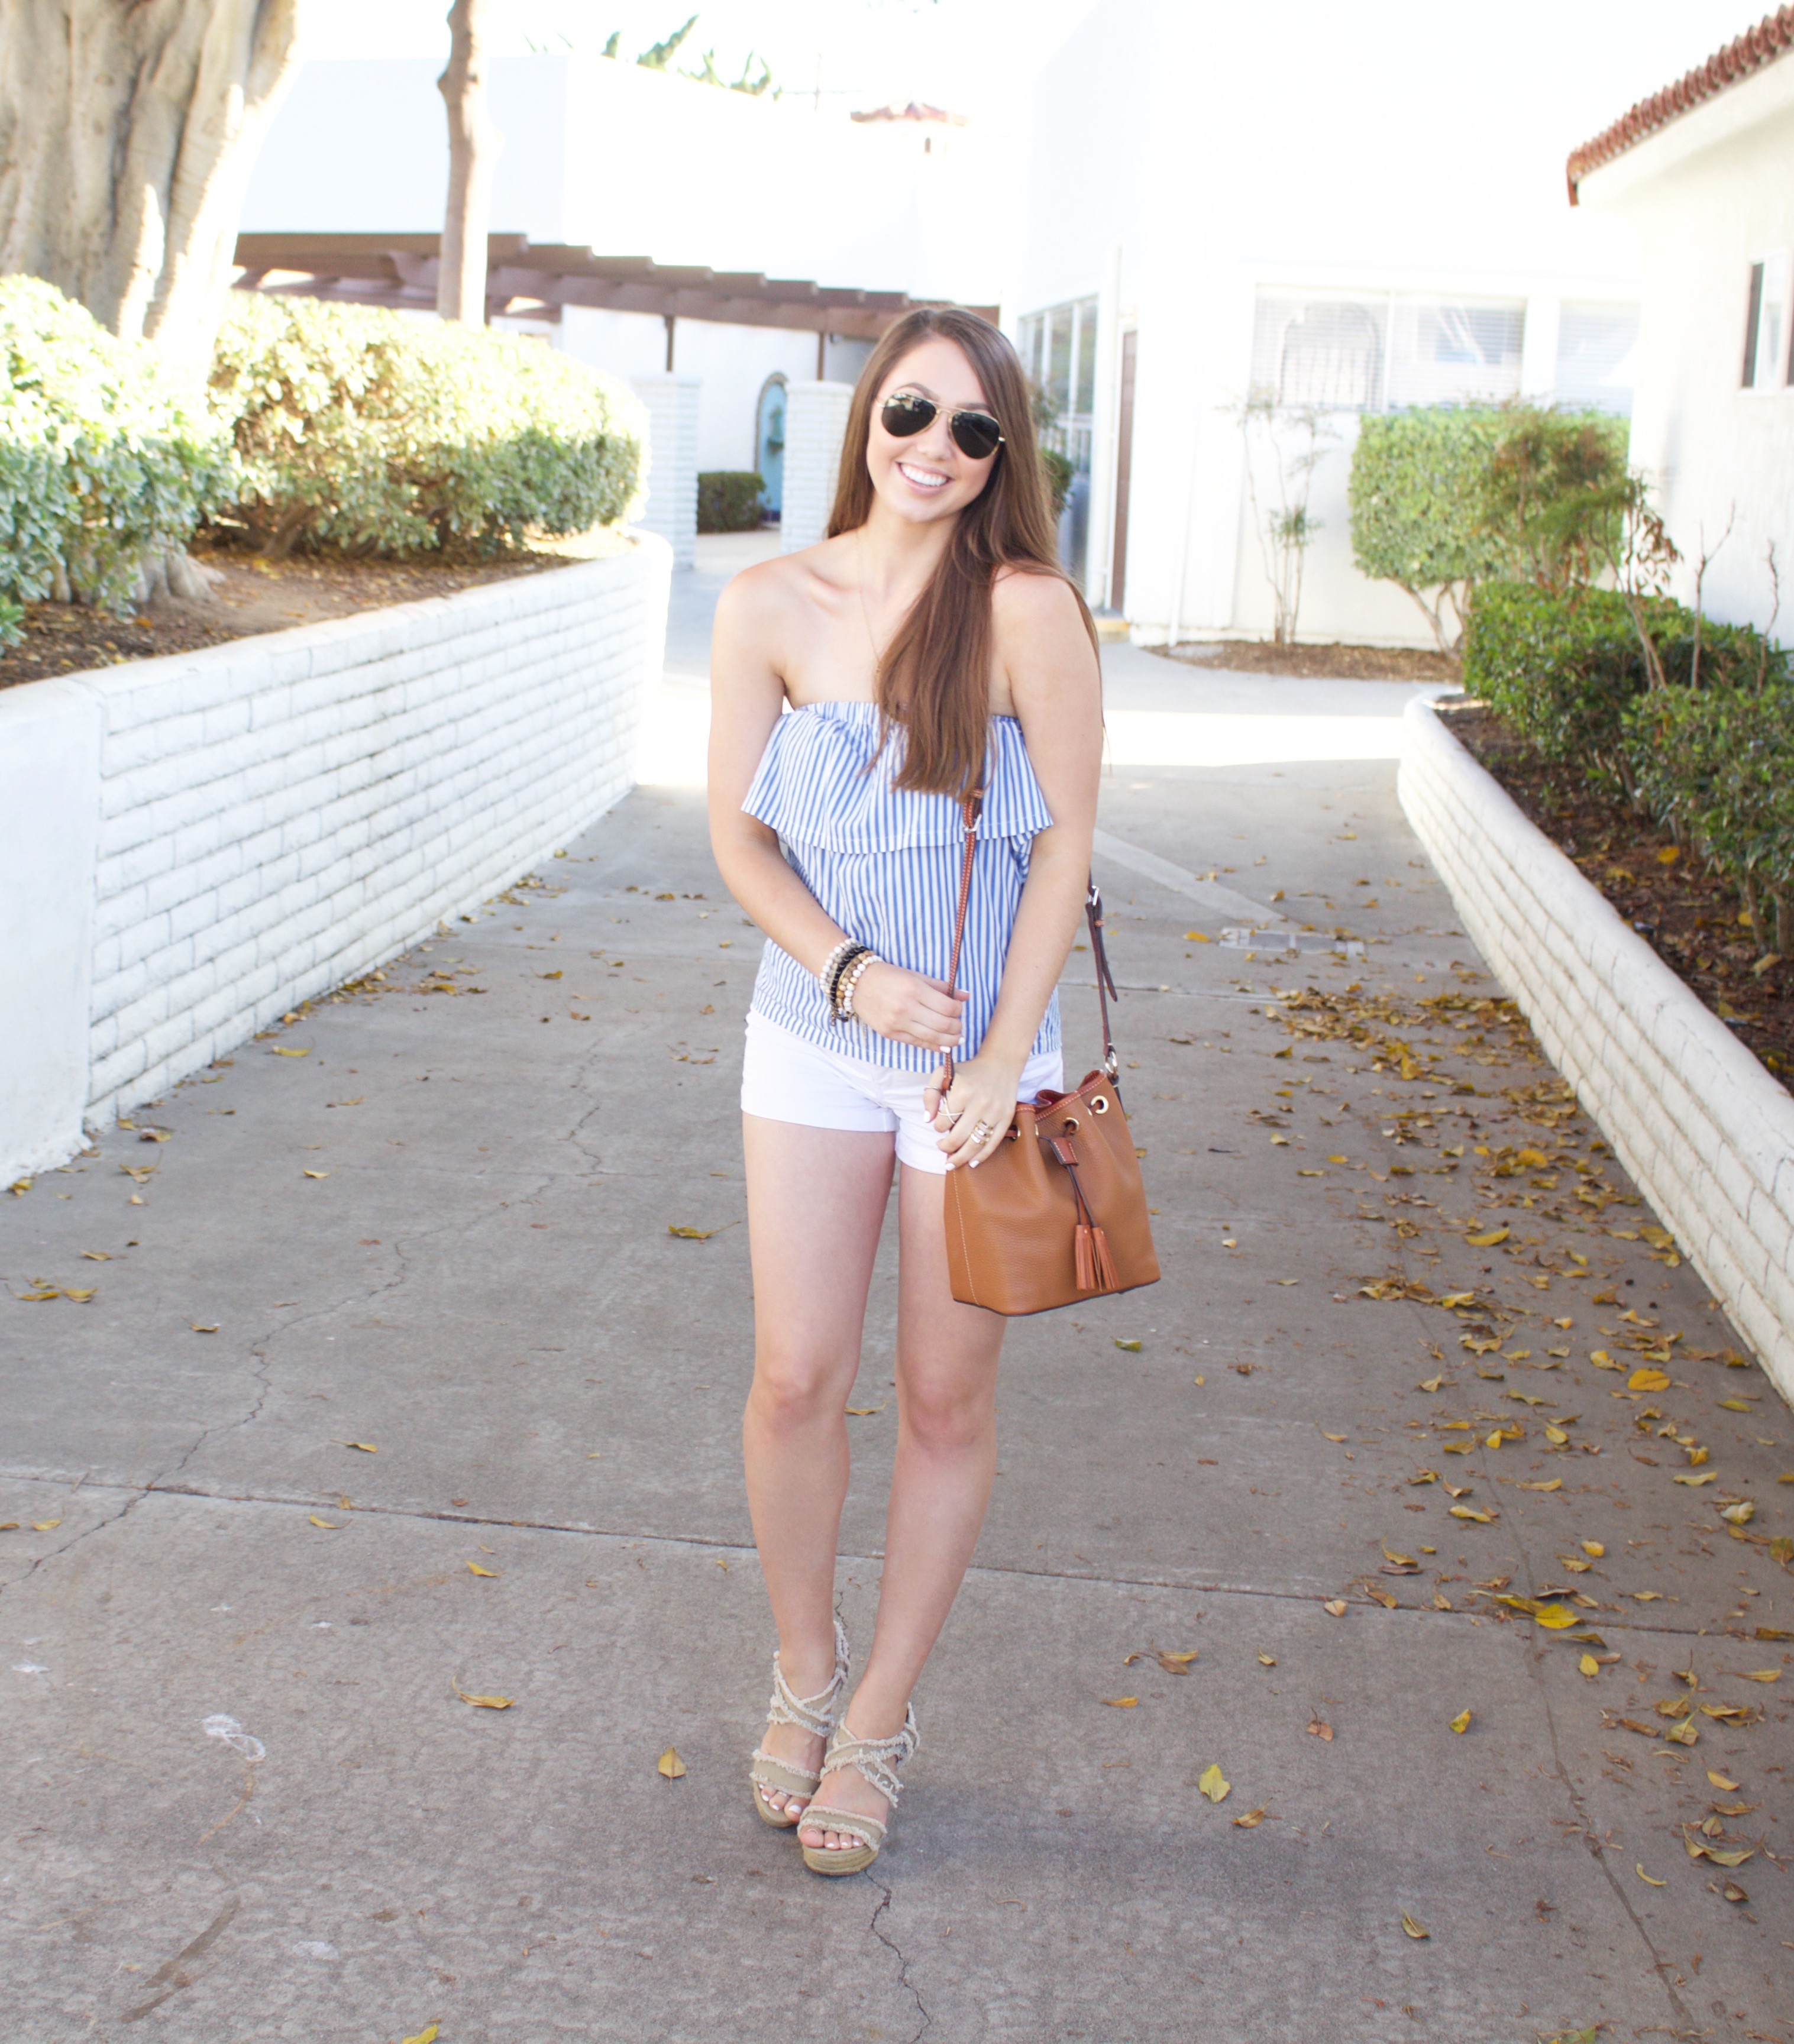 espadrille wedges - Blue and White Striped Strapless Top - My Styled Life